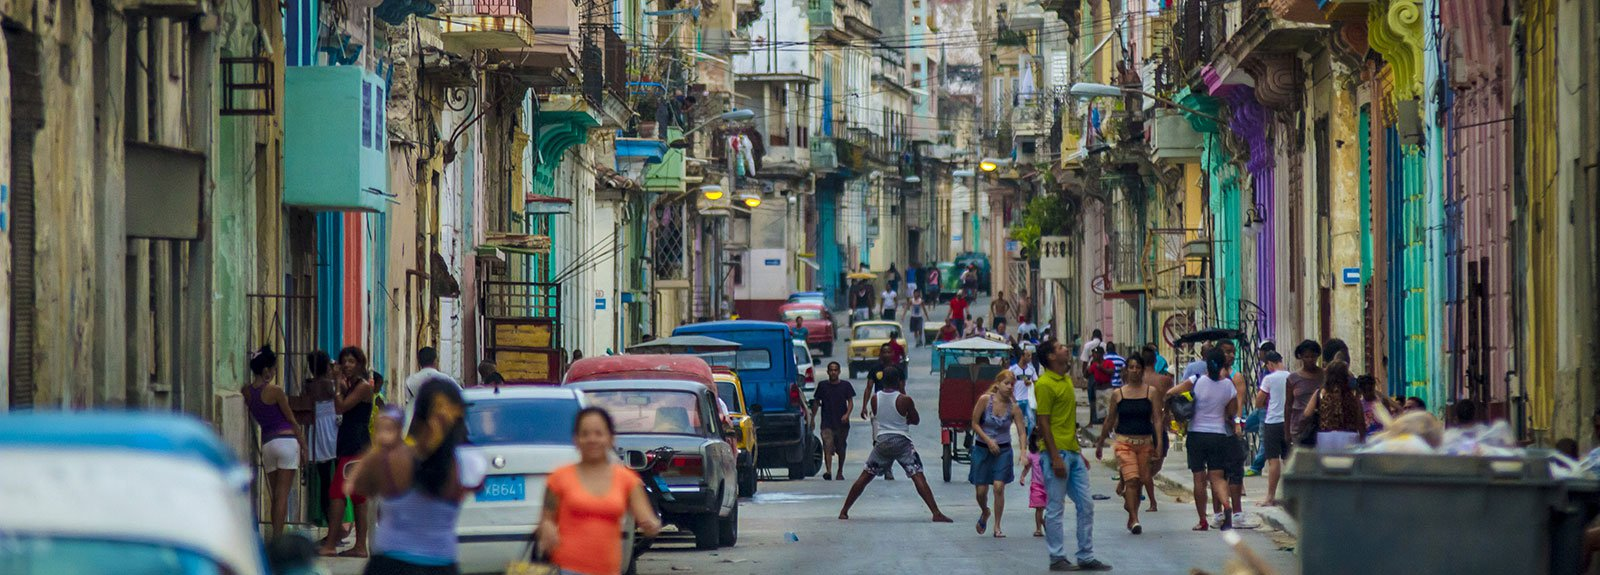 Street in Old Havana with kids playing and people walking